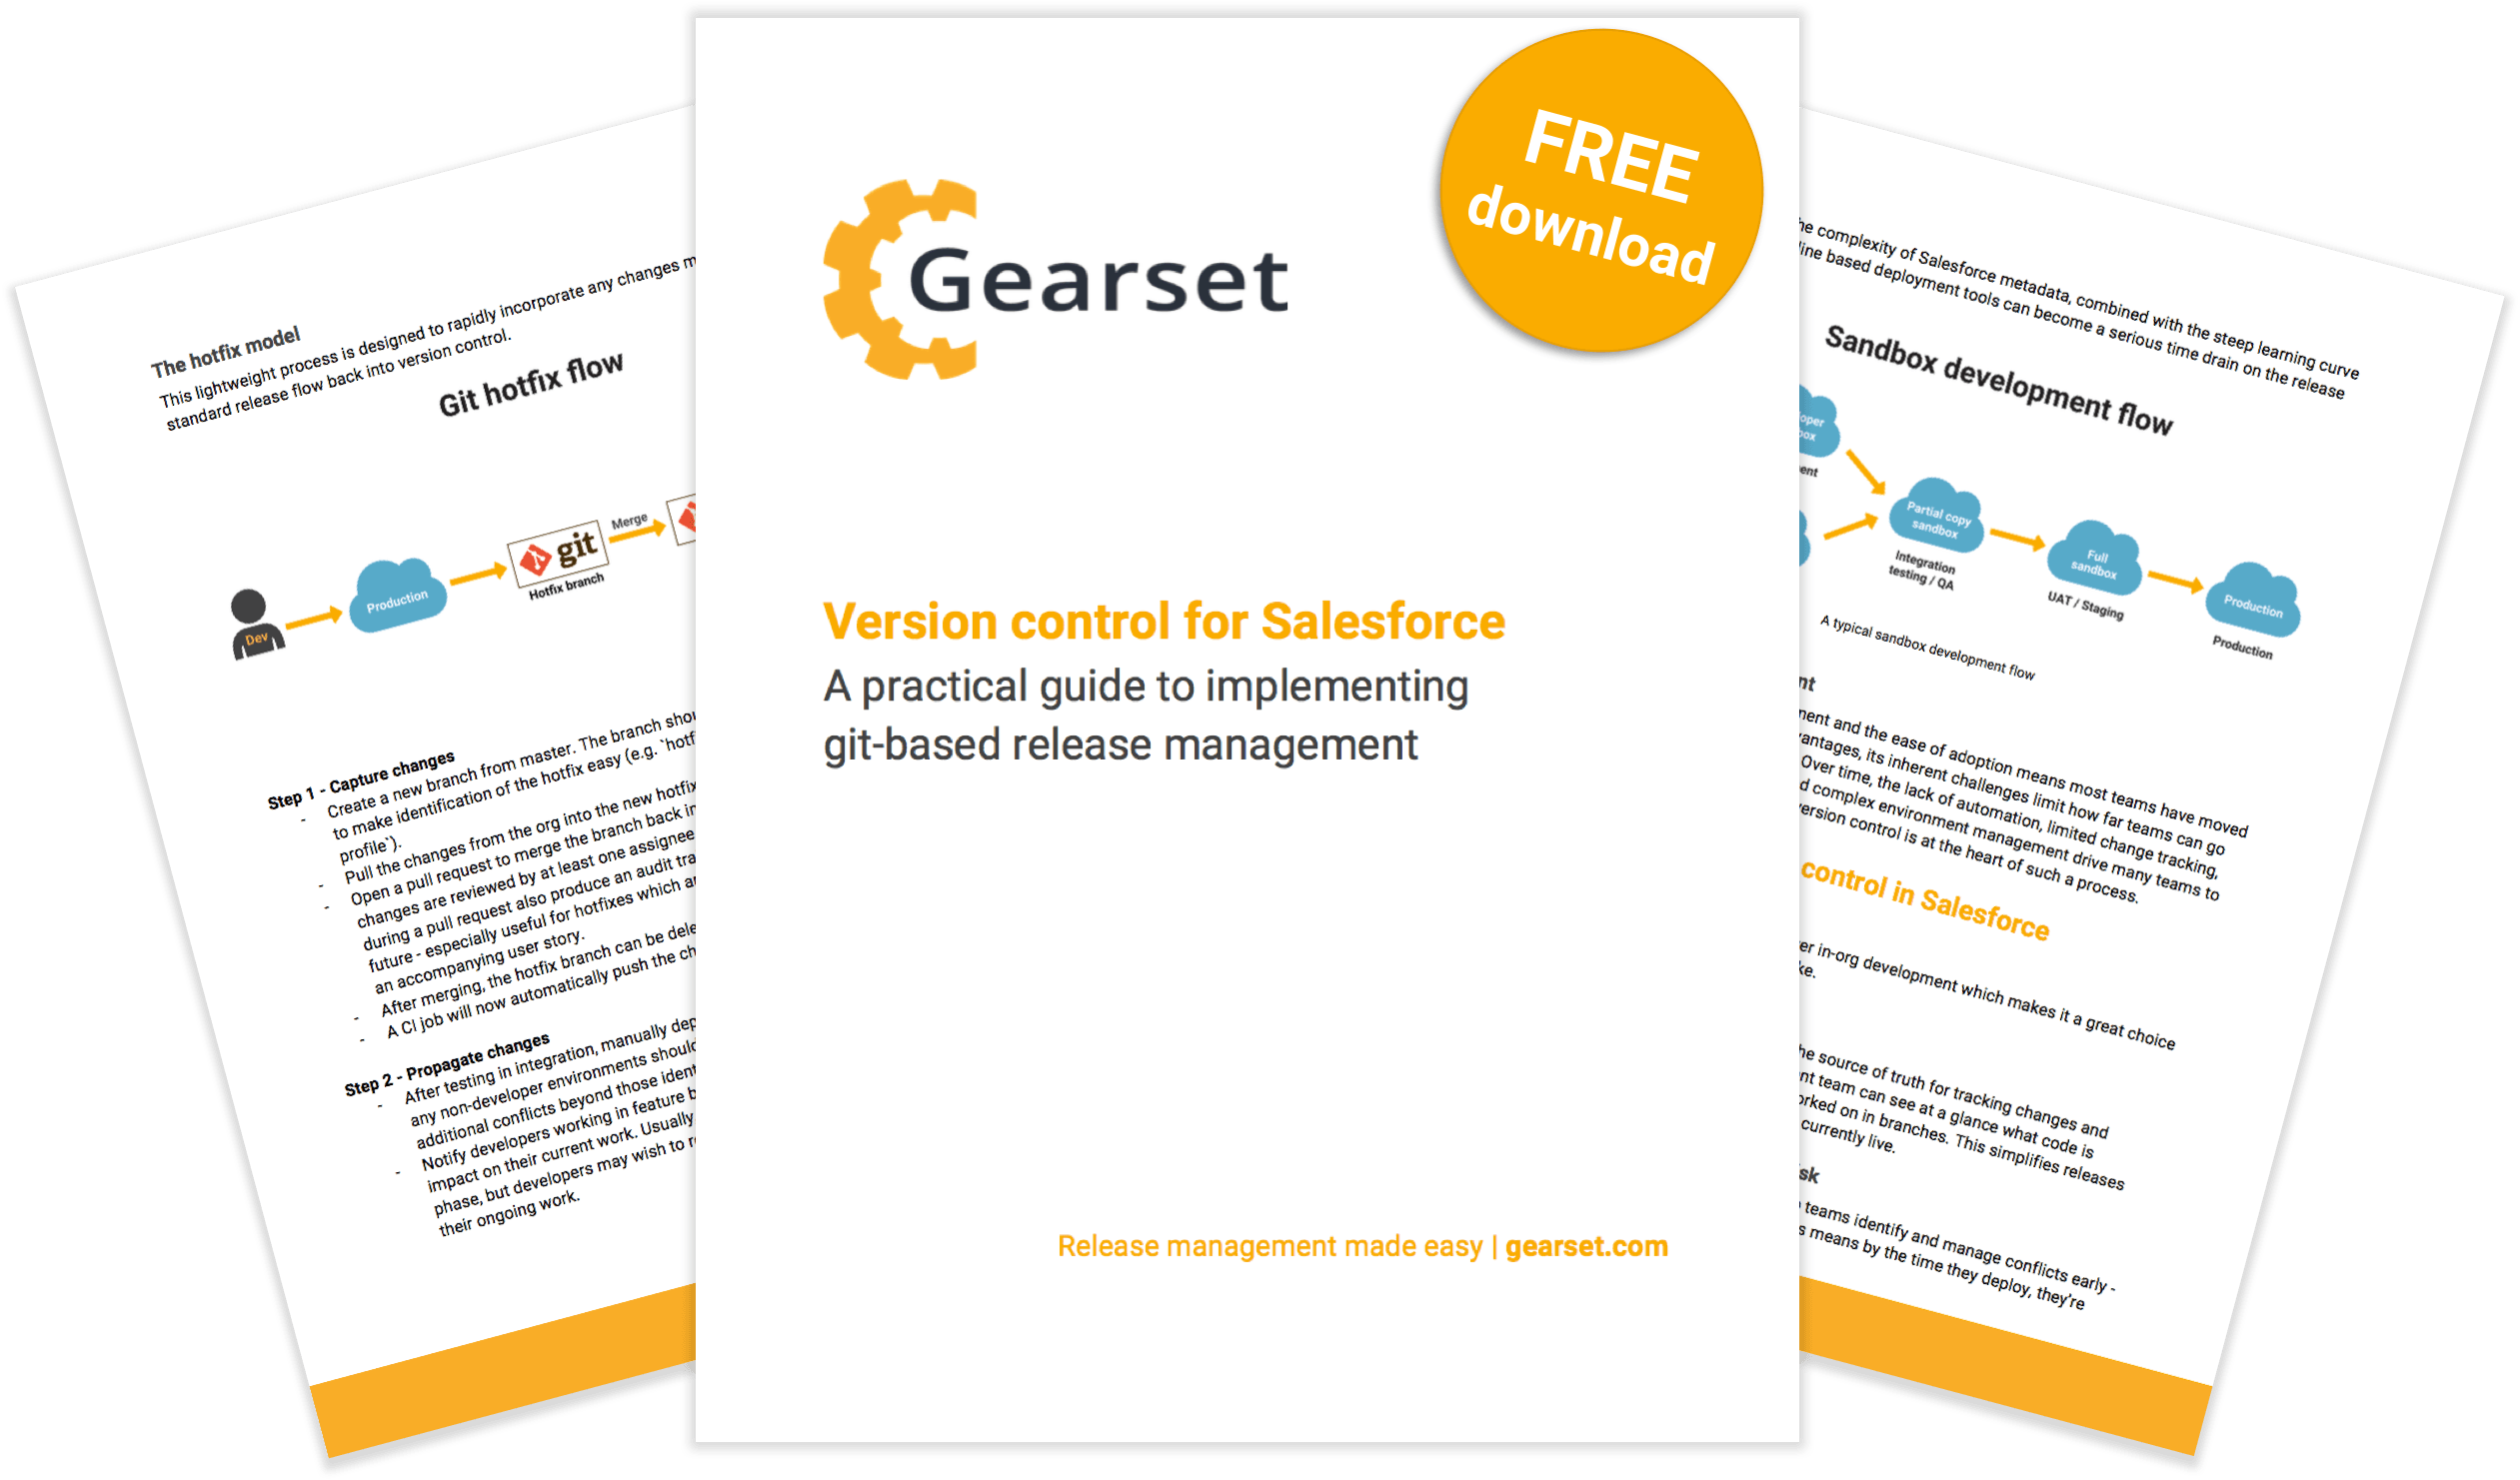 Gearset whitepaper: Version control for Salesforce